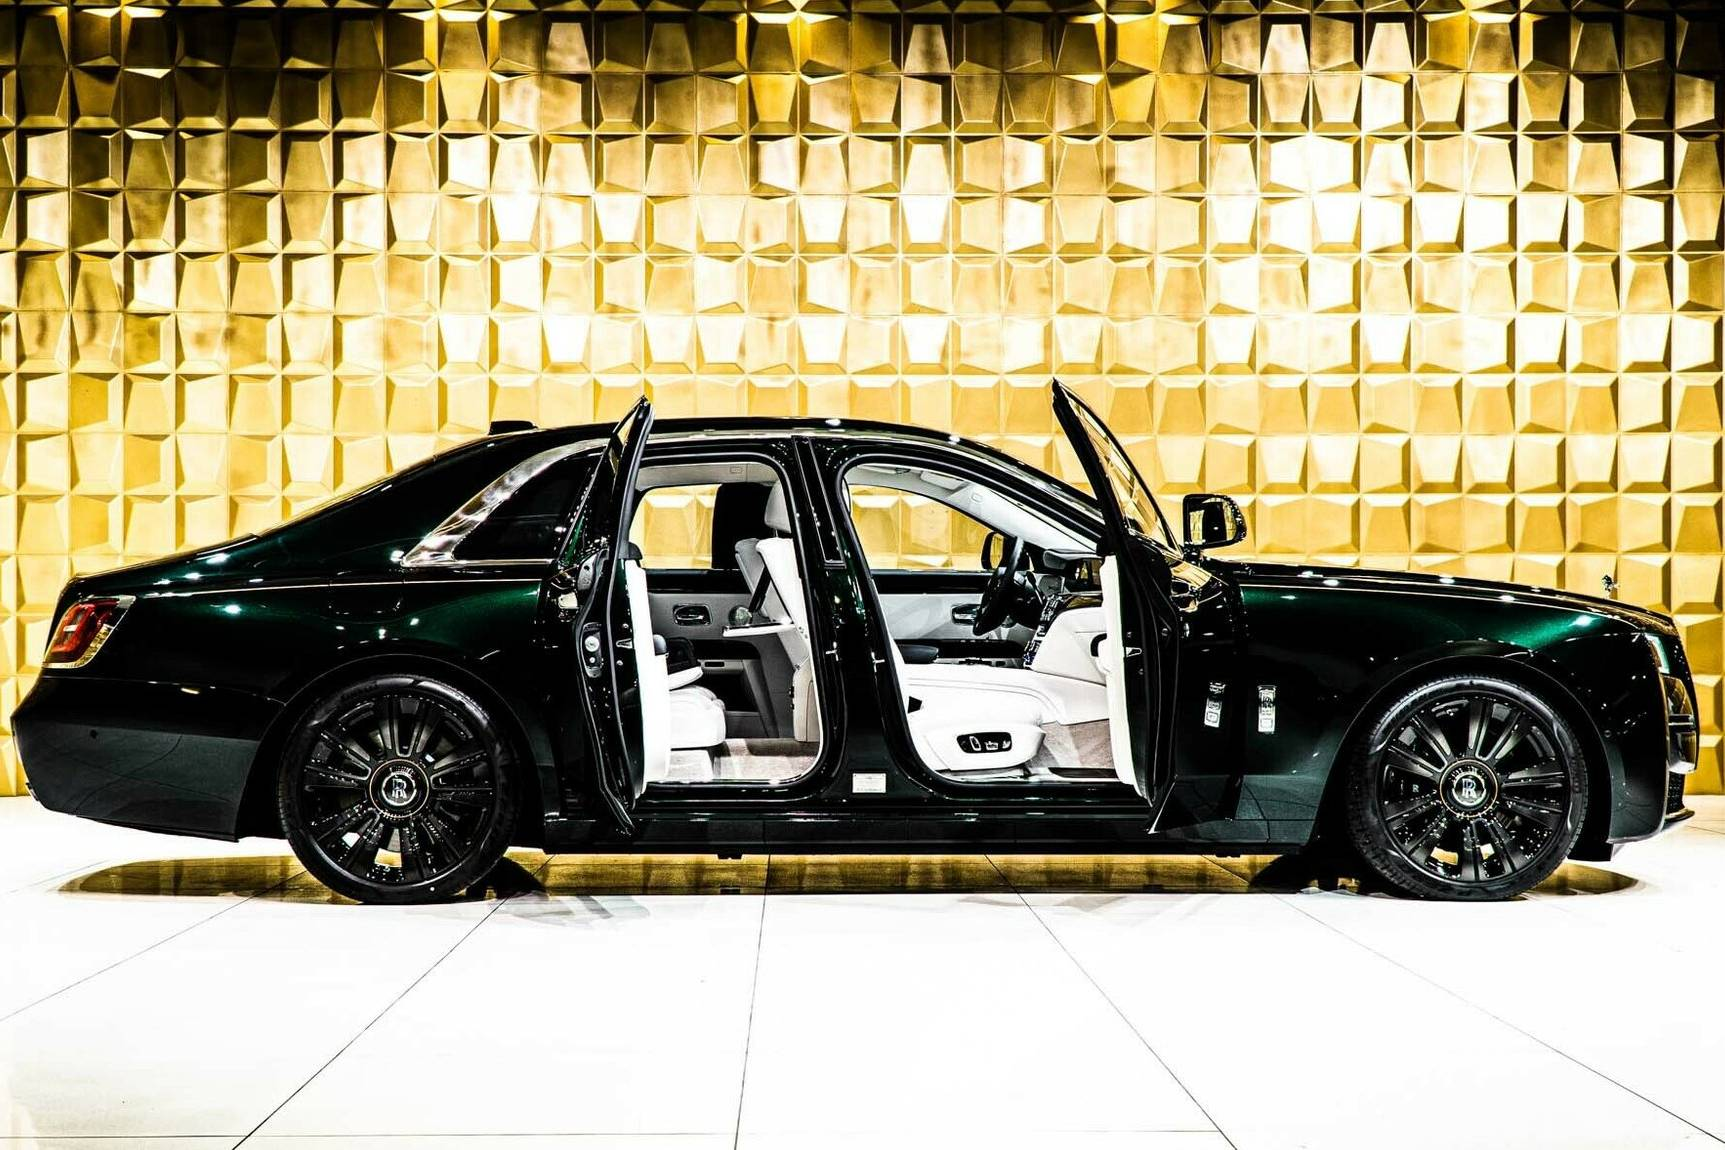 The most expensive Rolls Royce cars: from Sweptail and Ghost to Phantom and Cullinan.